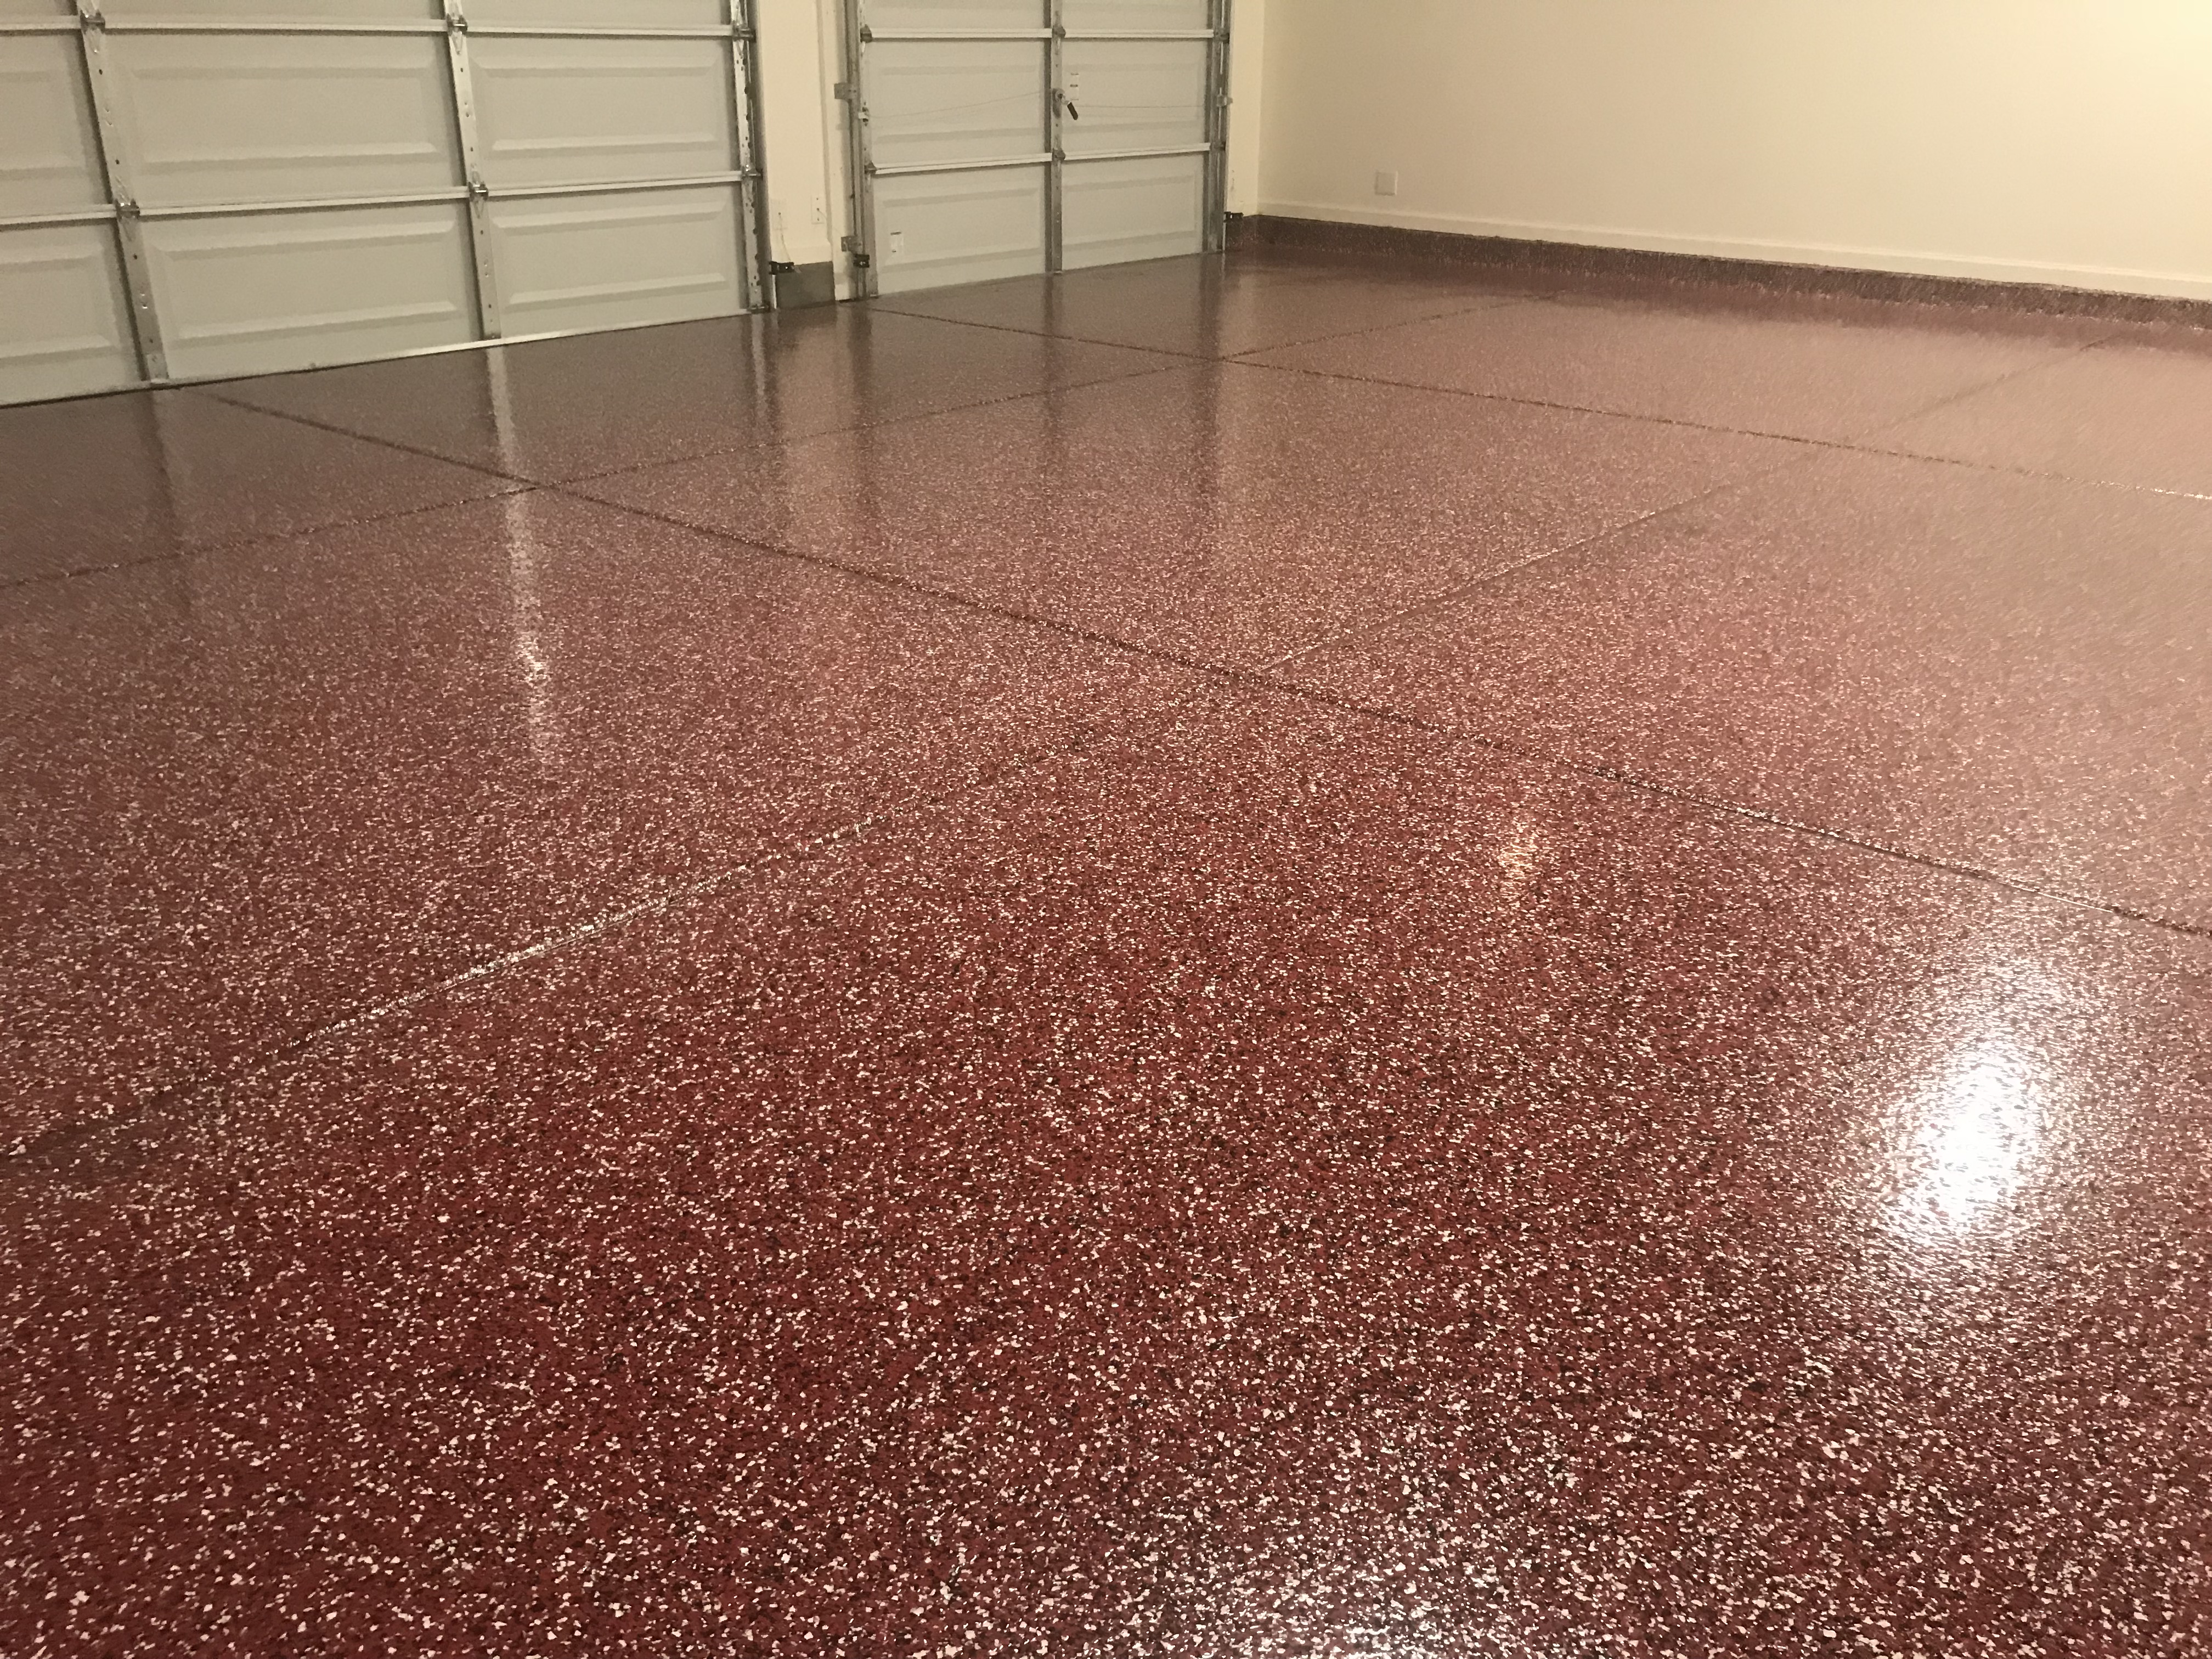 Garage Epoxy Tucson Epoxy Flooring Contractors American Epoxy Arizona